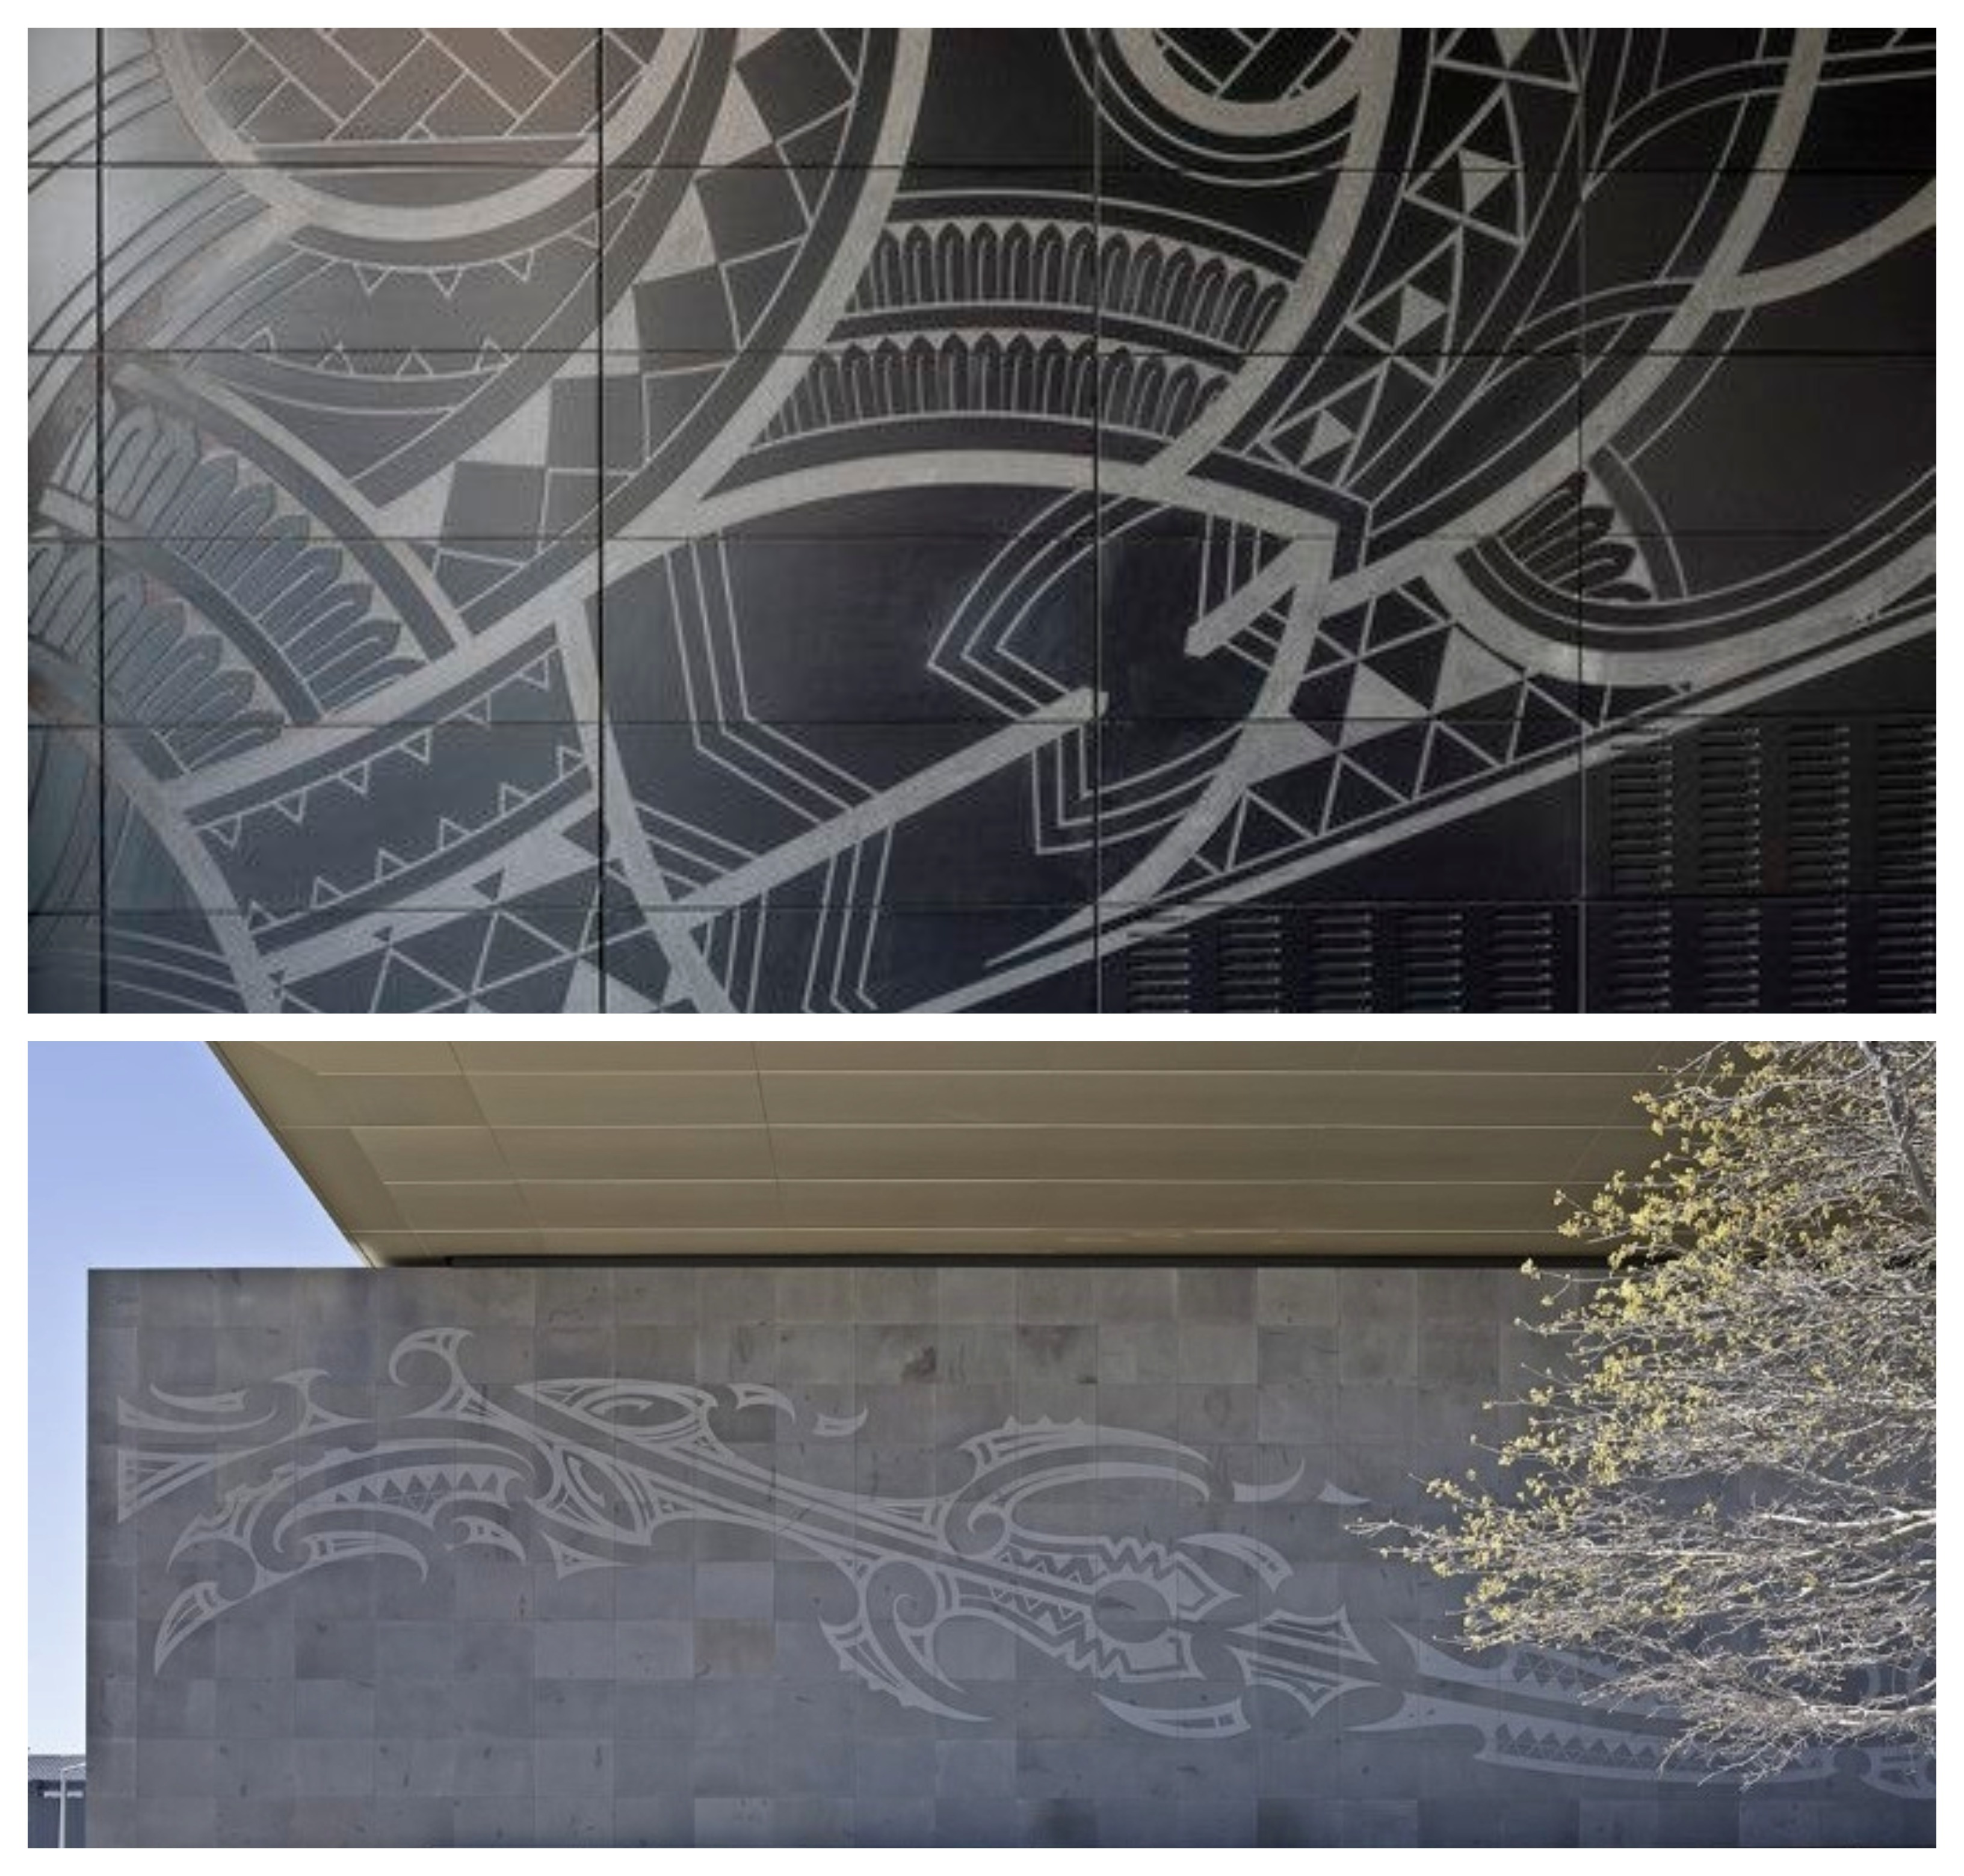 Local Māori artists Morgan Mathews-Hale and Riki Manuel collaborated on the design that was sand blasted by hand onto bluestone tiles of the 38-metre external wall of Tūranga.